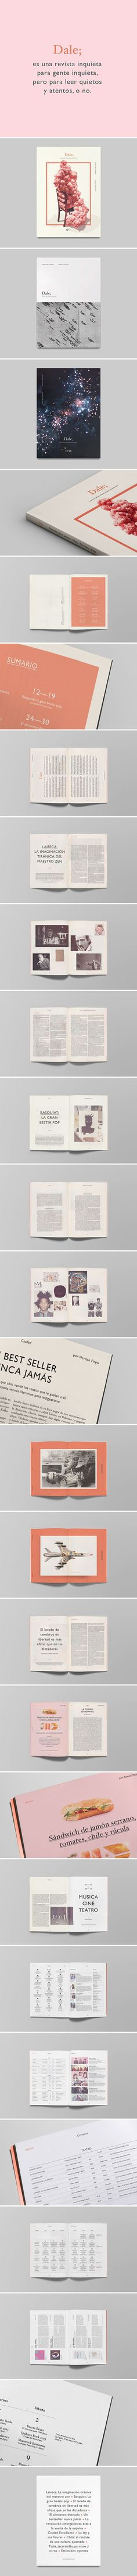 LOVE the pink page which can be seen a few photos down - bit different to just white. Editorial Layout, Editorial Design, Branding, Booklet Layout, Page Layout Design, Design Brochure, Portfolio Book, Typography Layout, Publication Design